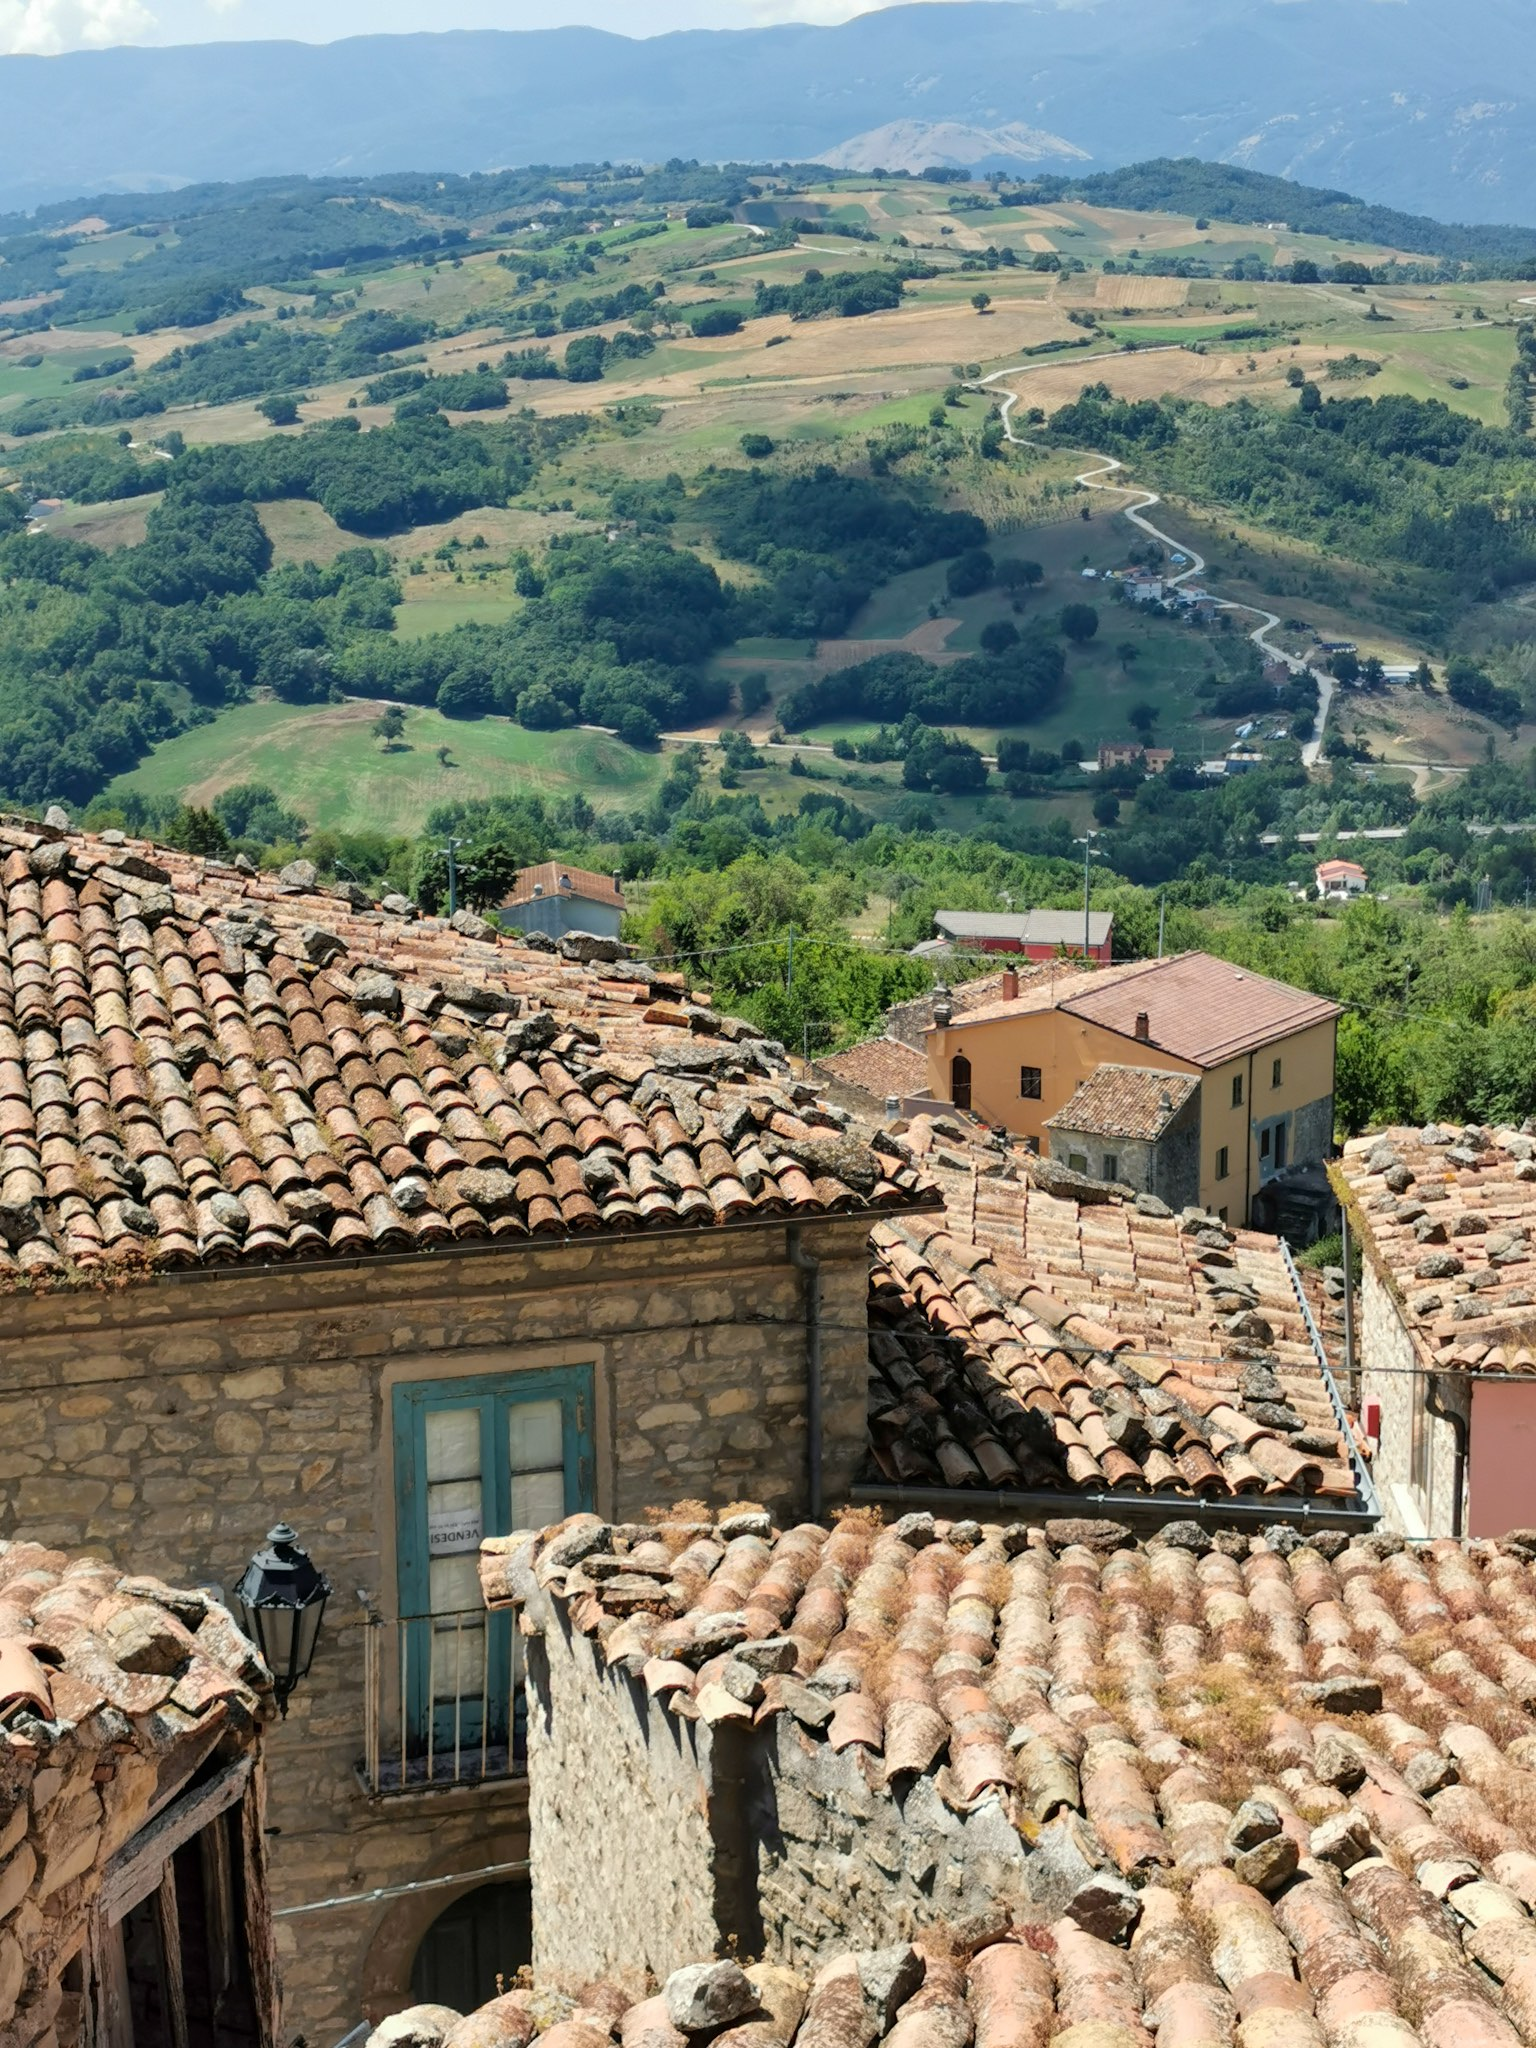 The village of Casalciprano in Molise